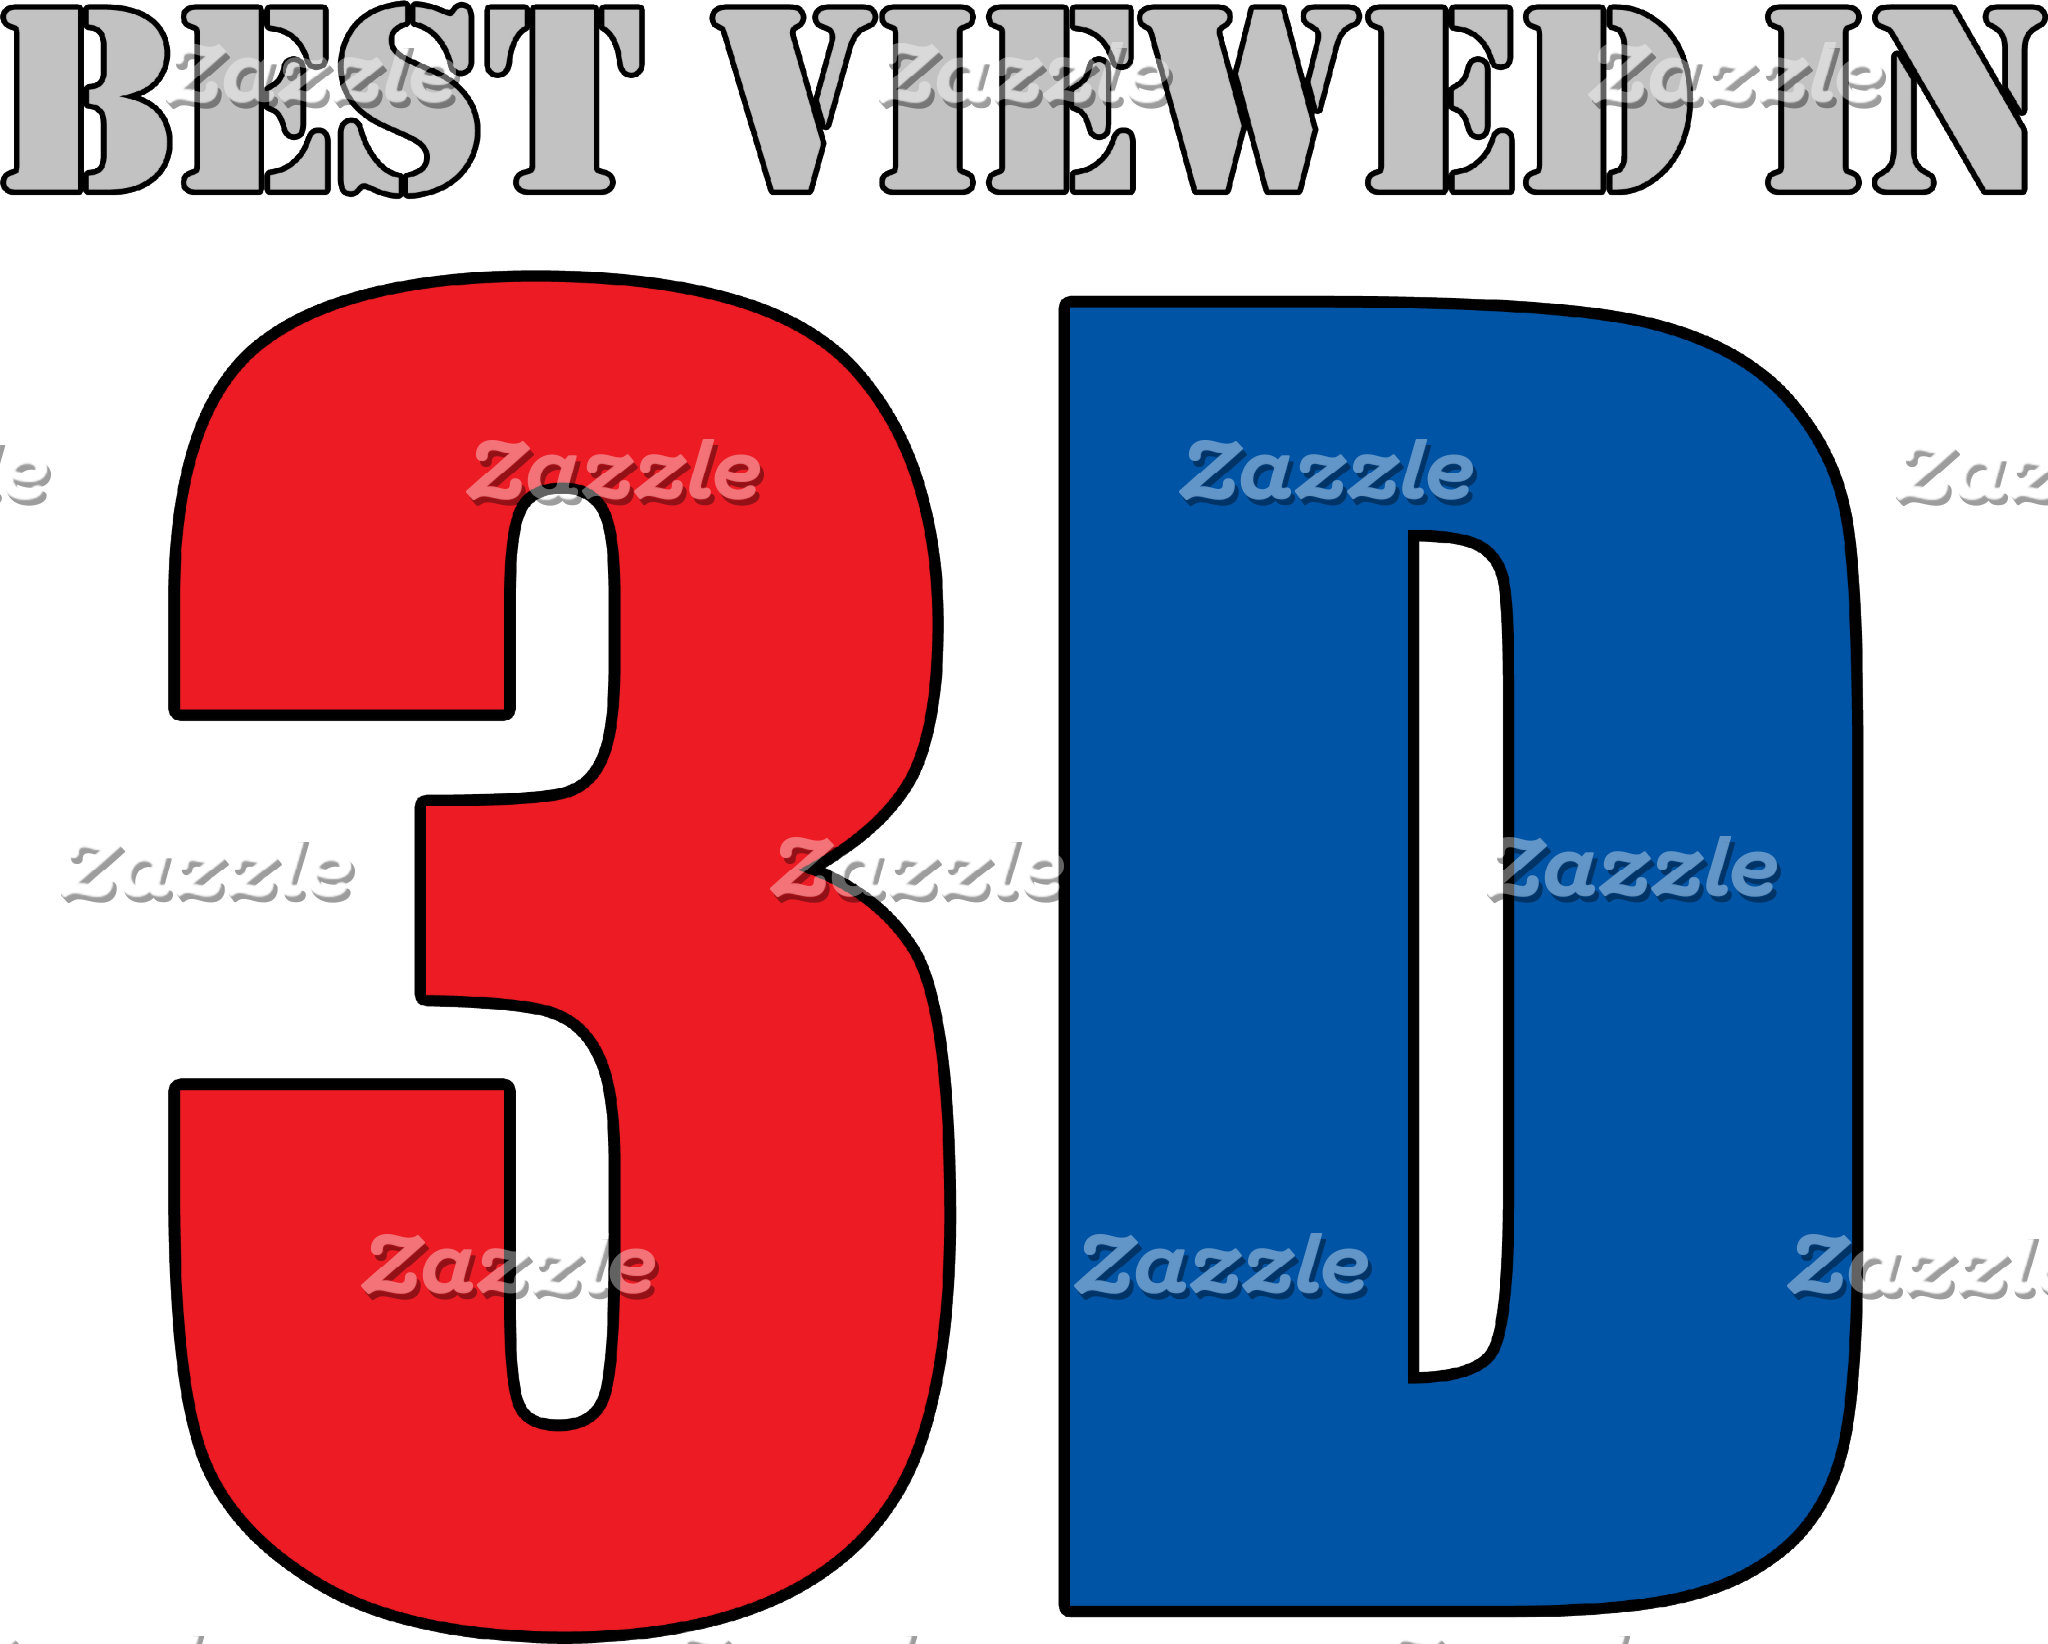 Best Viewed In 3d